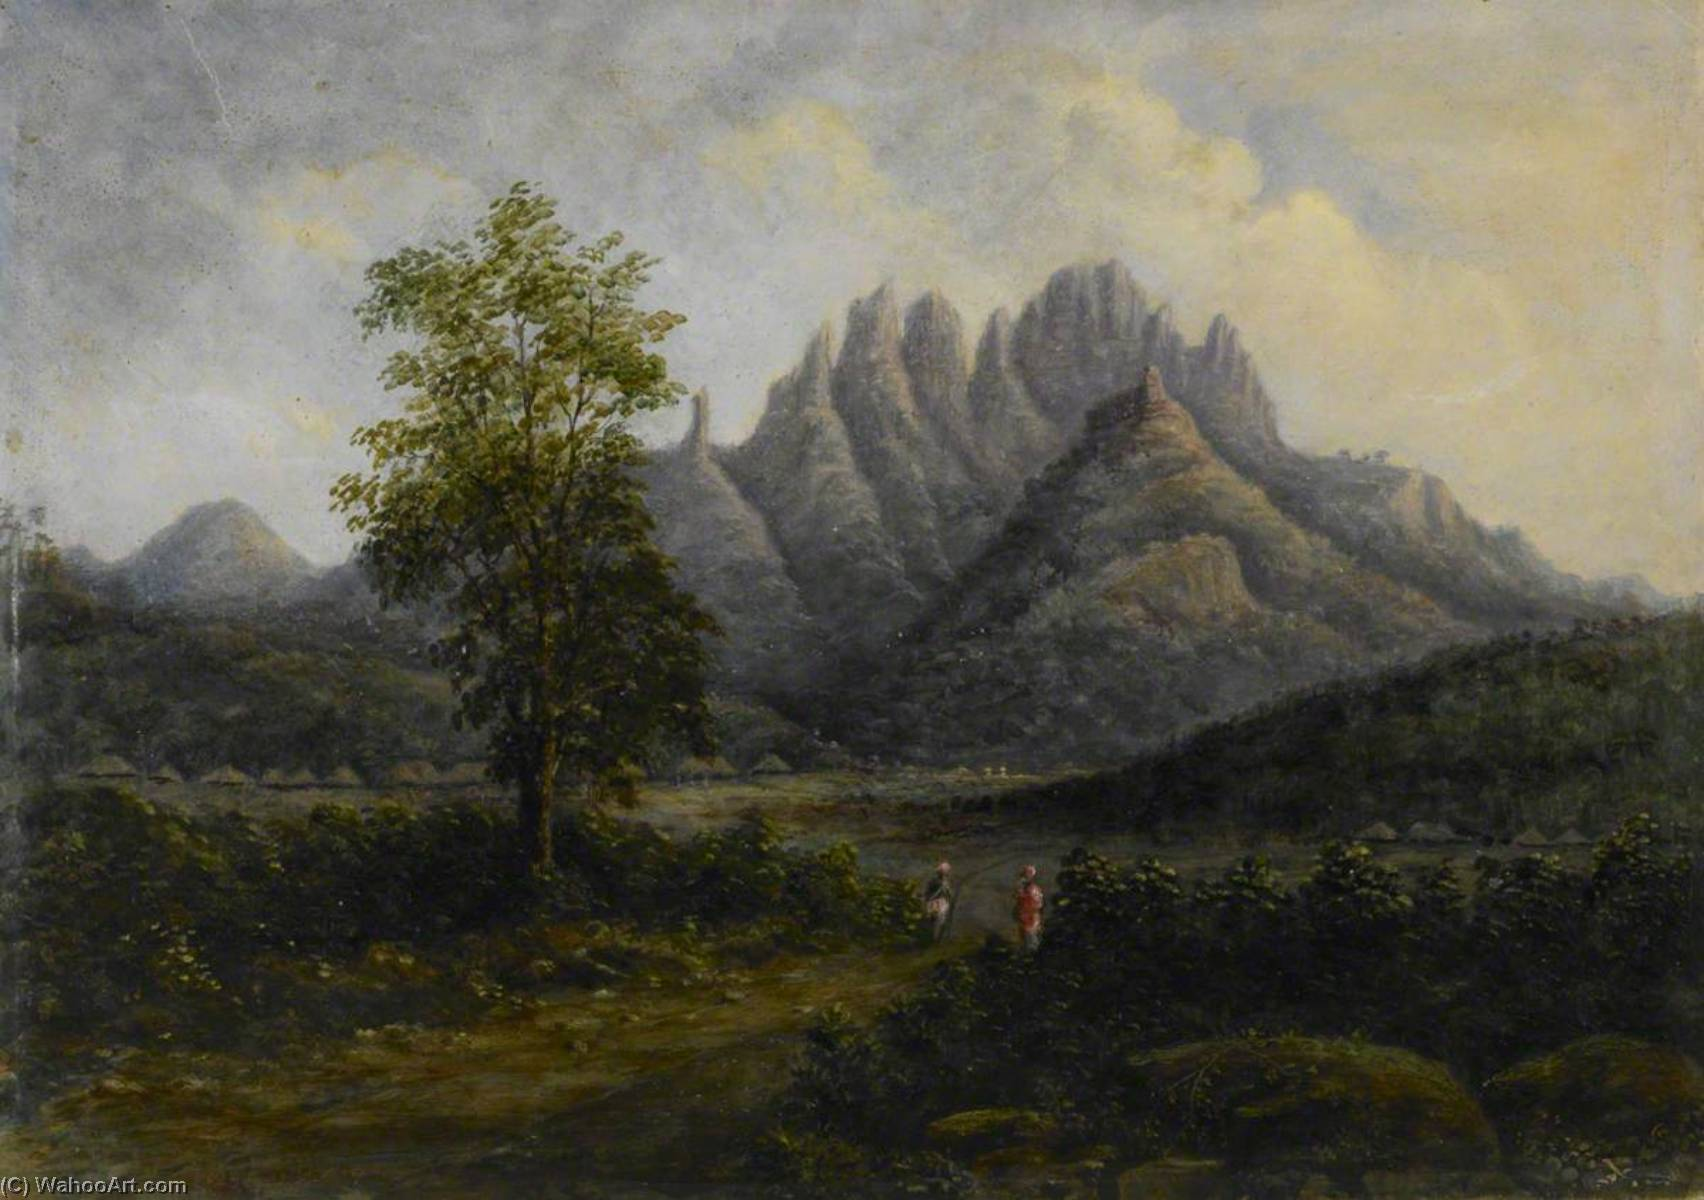 Paesaggio montano come  dopodomani  Occidentale  ghat , 1876 di William Robert Houghton | WahooArt.com